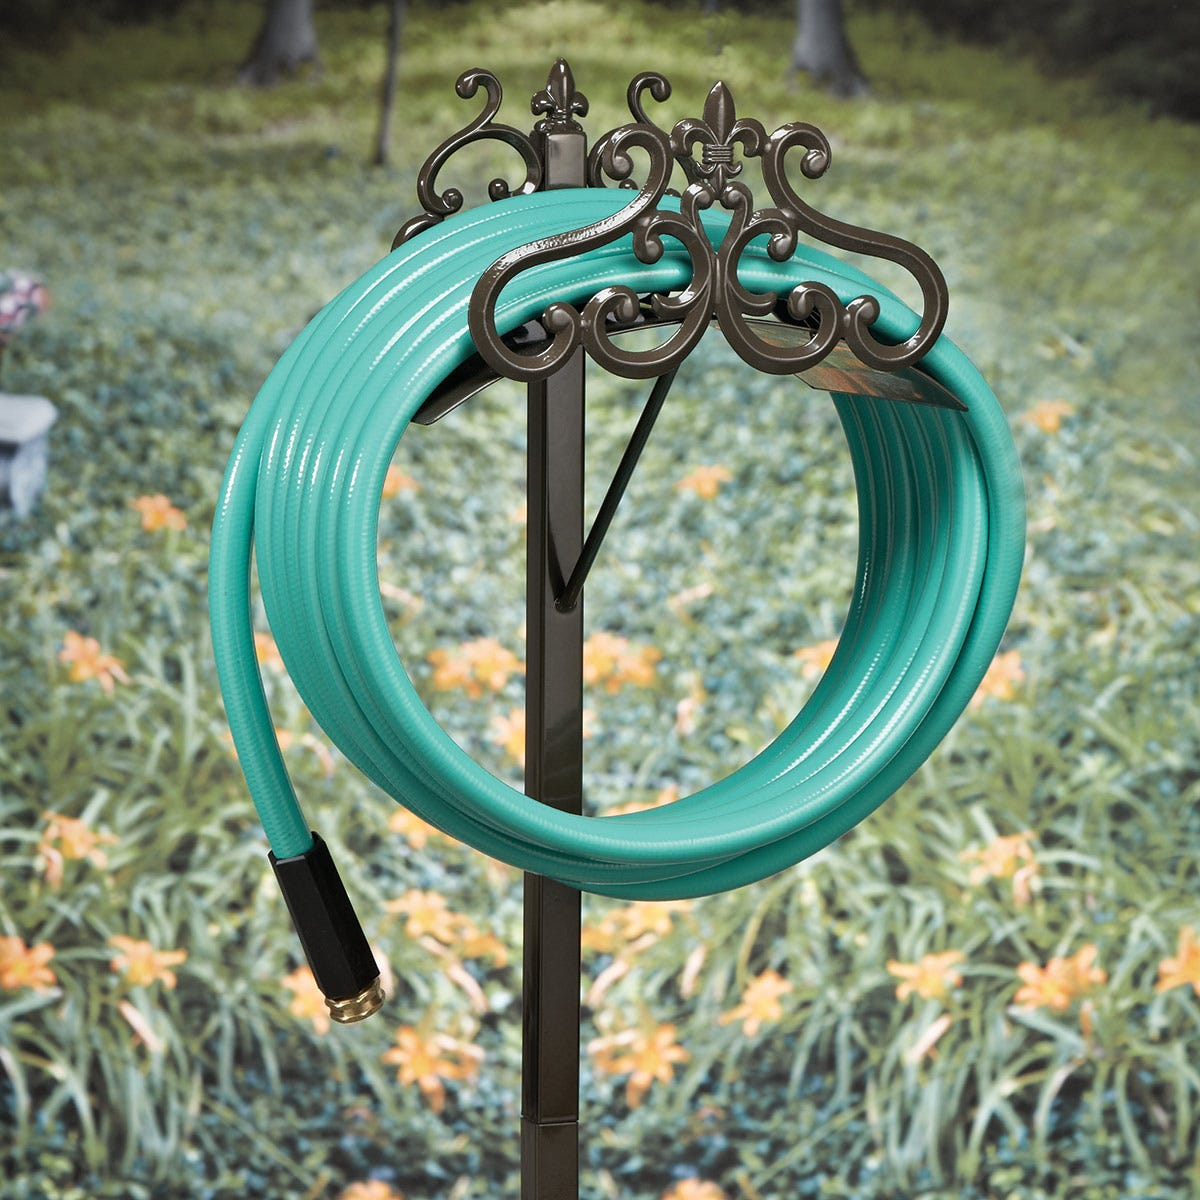 garden stand the p decorative chickadee oracle hiders decor reels cart reel butler holders page holder hose pots